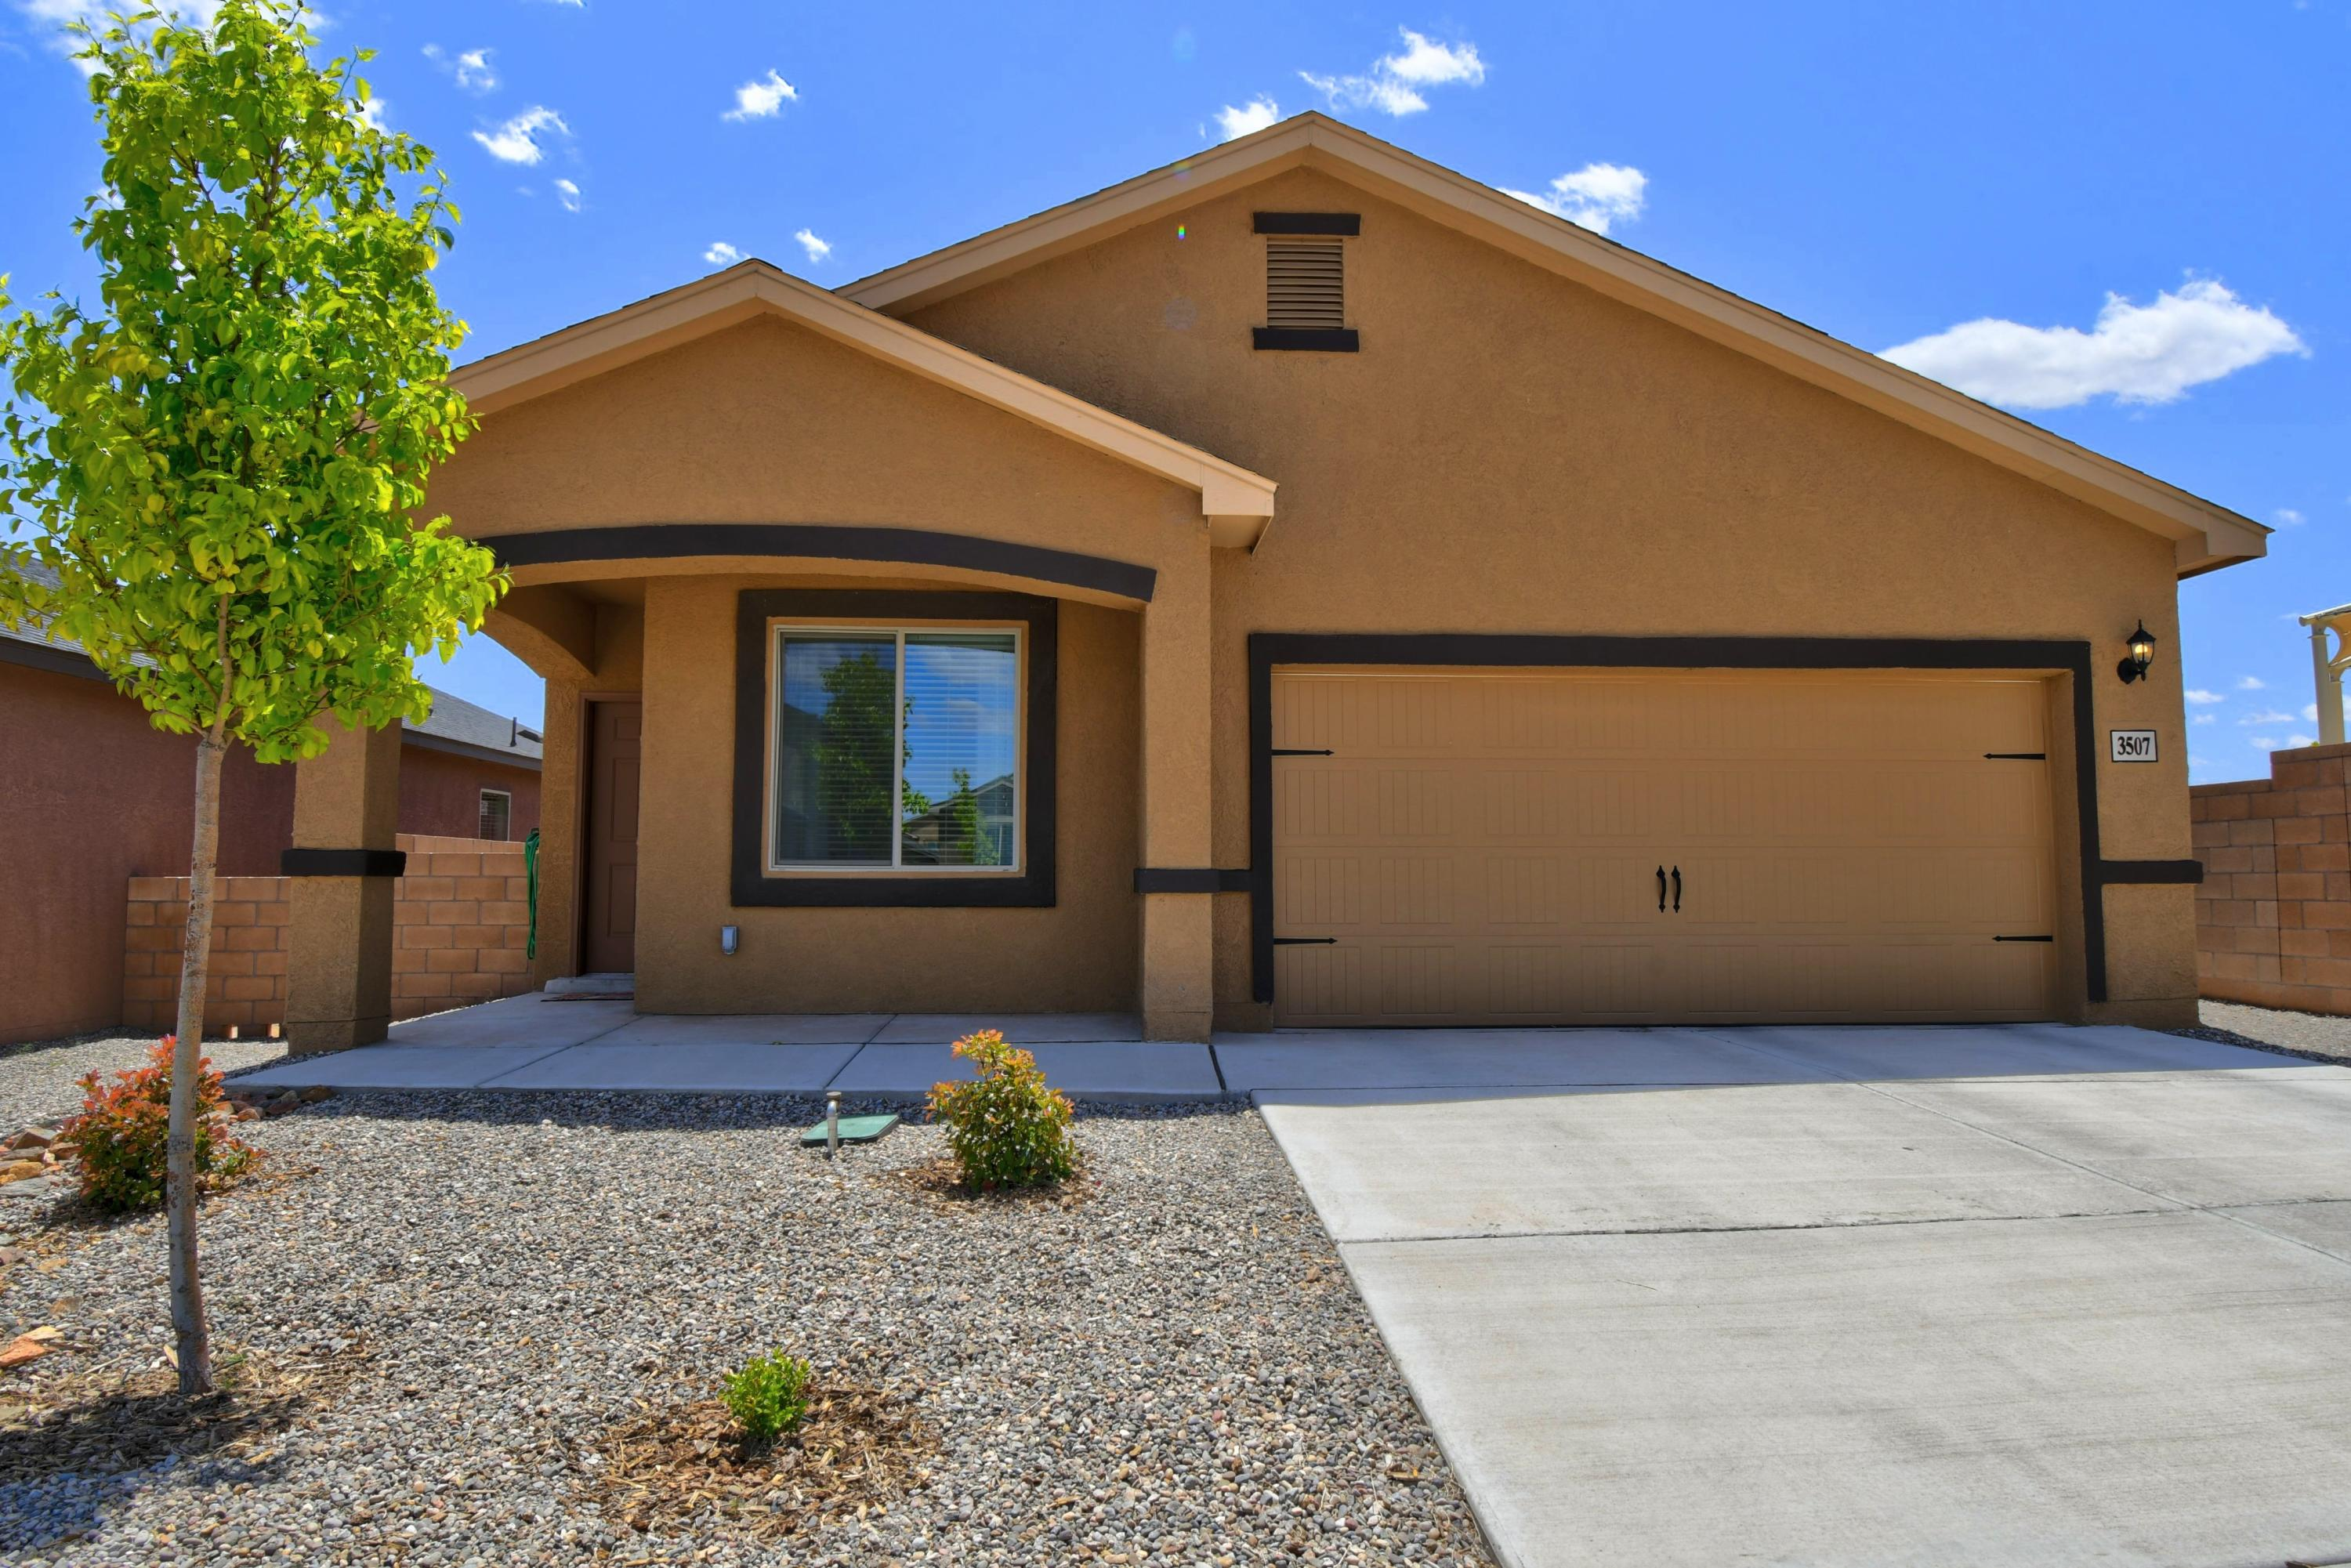 Beautiful newer home with 3 beds plus office room. Granite countertops in the kitchen and established trees and grass in the backyard. A must see for anyone wanting to live in the Rio Rancho area.